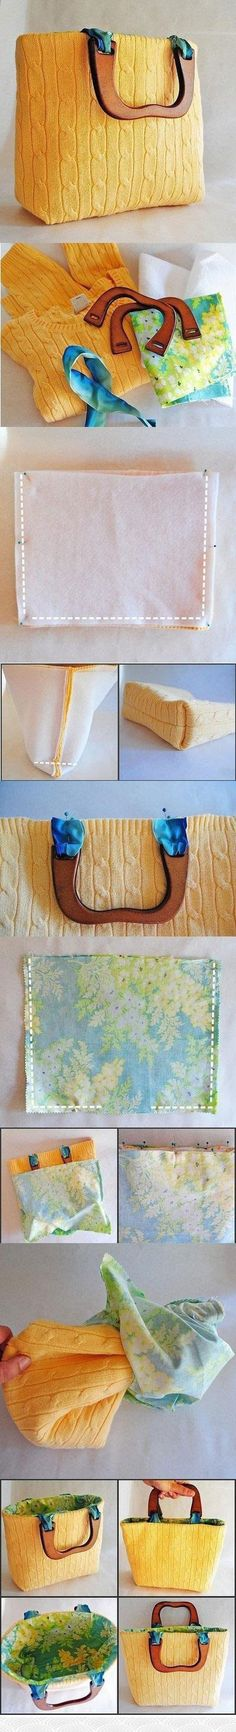 DIY: Fashion Ideas